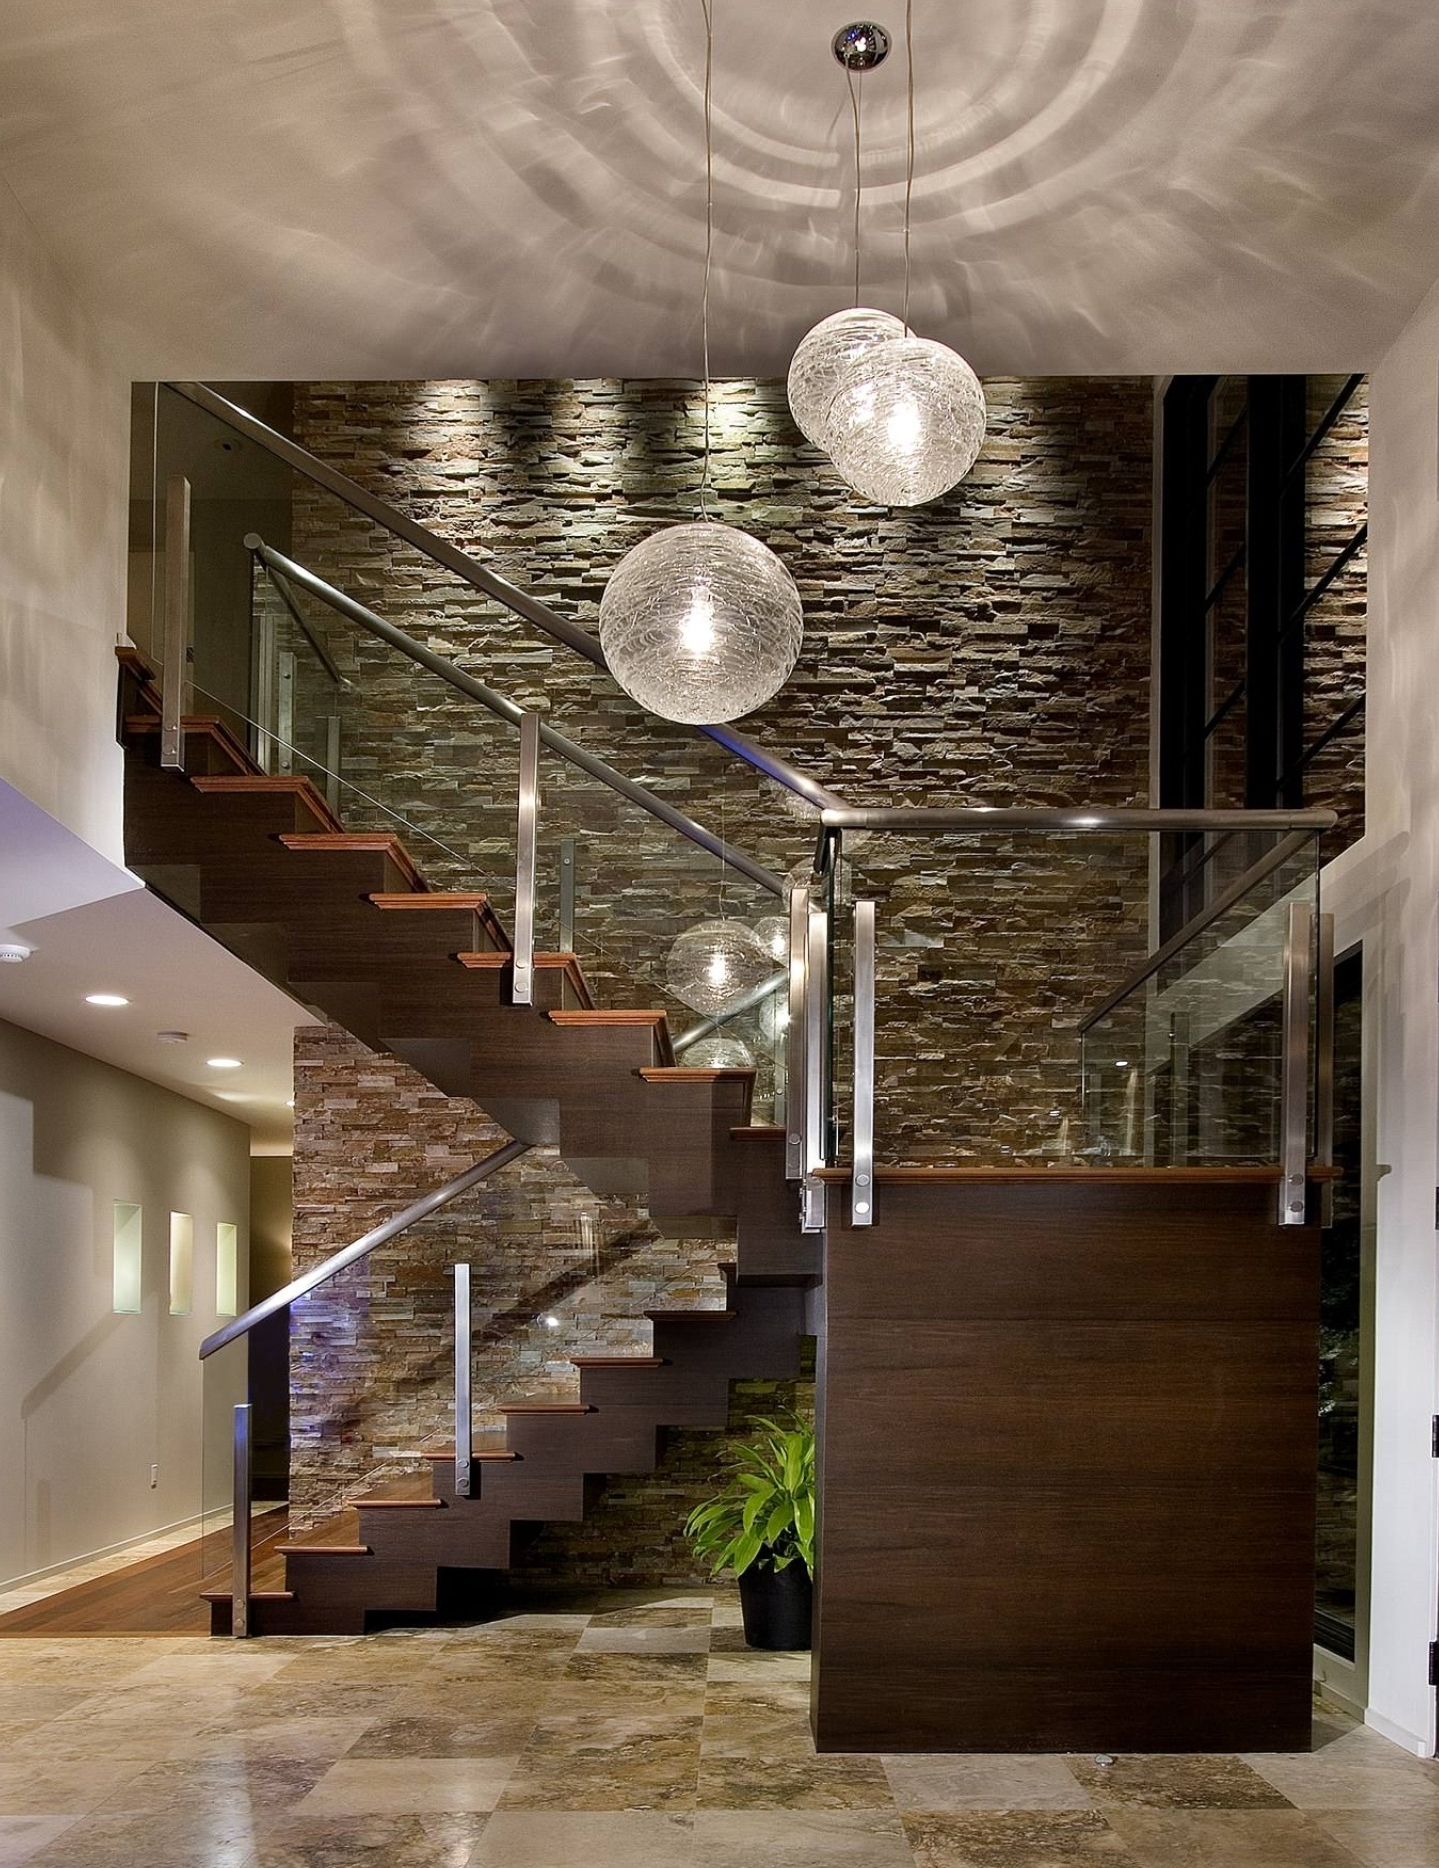 Staircase Chandeliers With Favorite Extra High Ceilings, Glass Stairwell, Long Chandeliers, Enters Into (View 18 of 20)